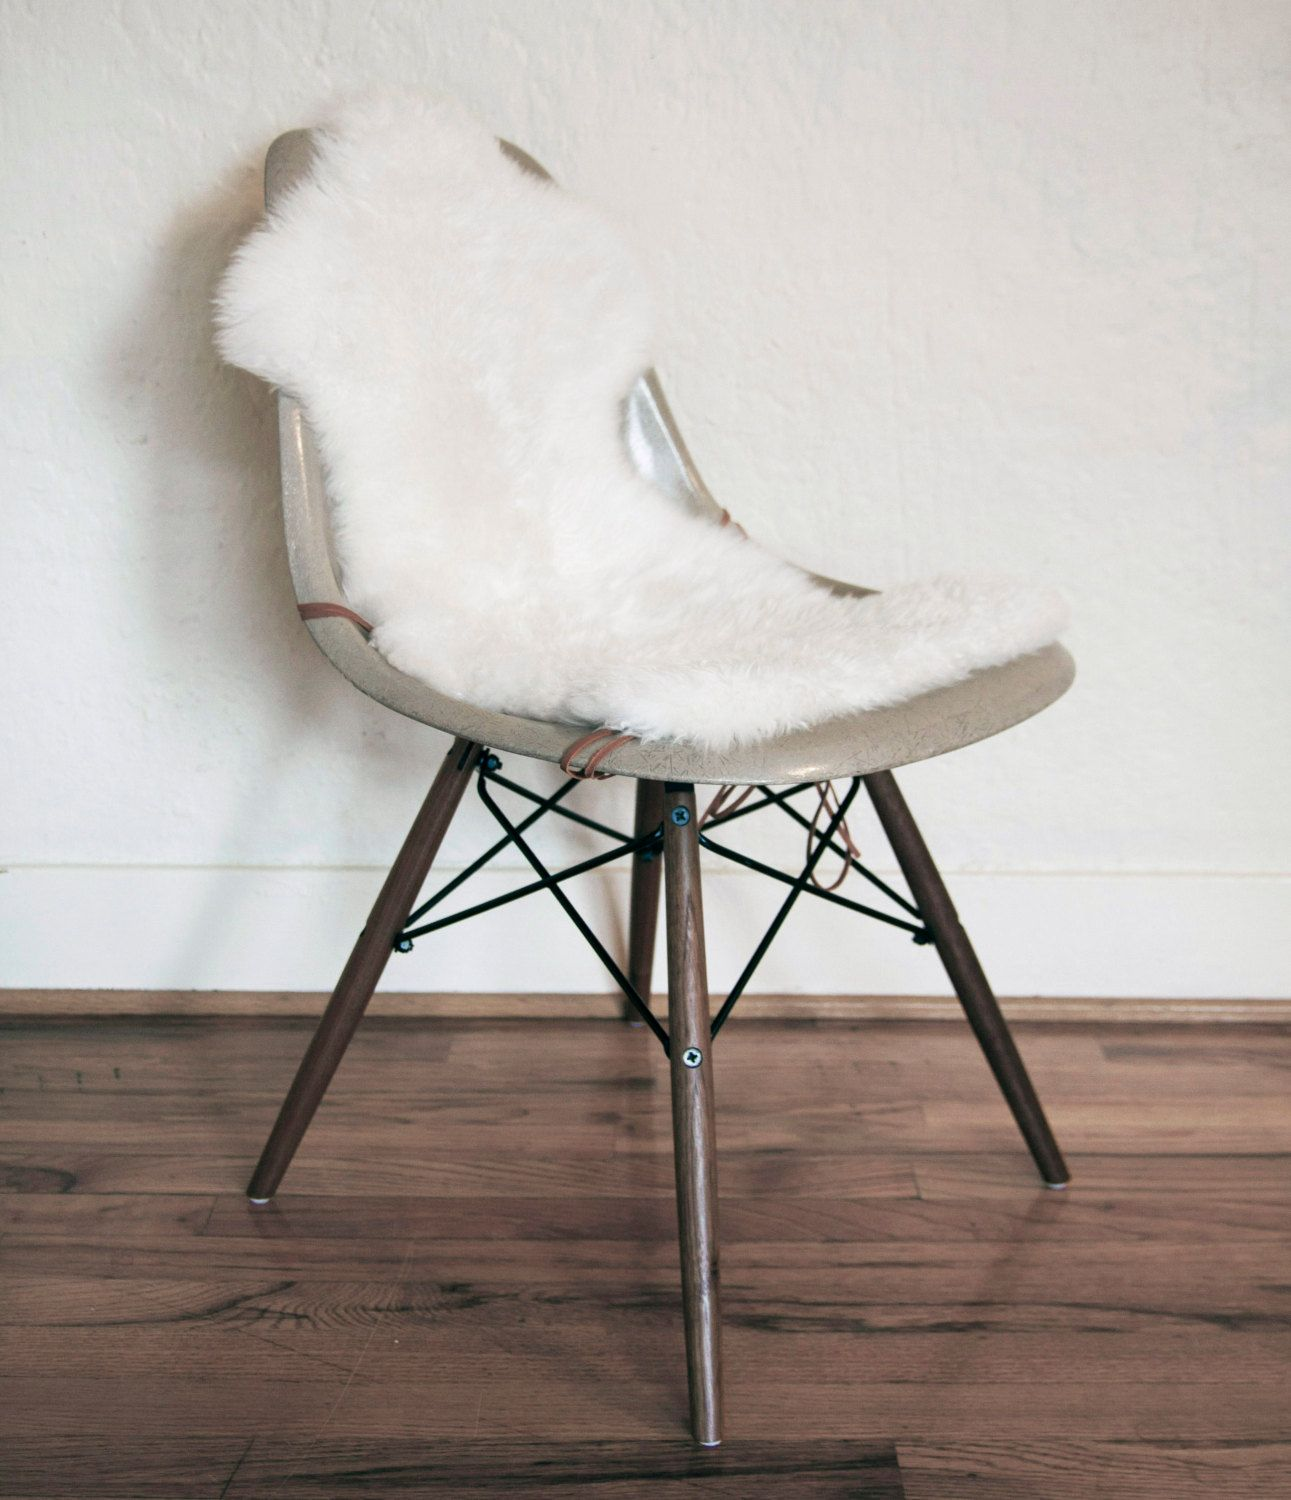 Real Sheepskin Covers For Eames Style Shell Chairs 78 00 Via Etsy Projekte